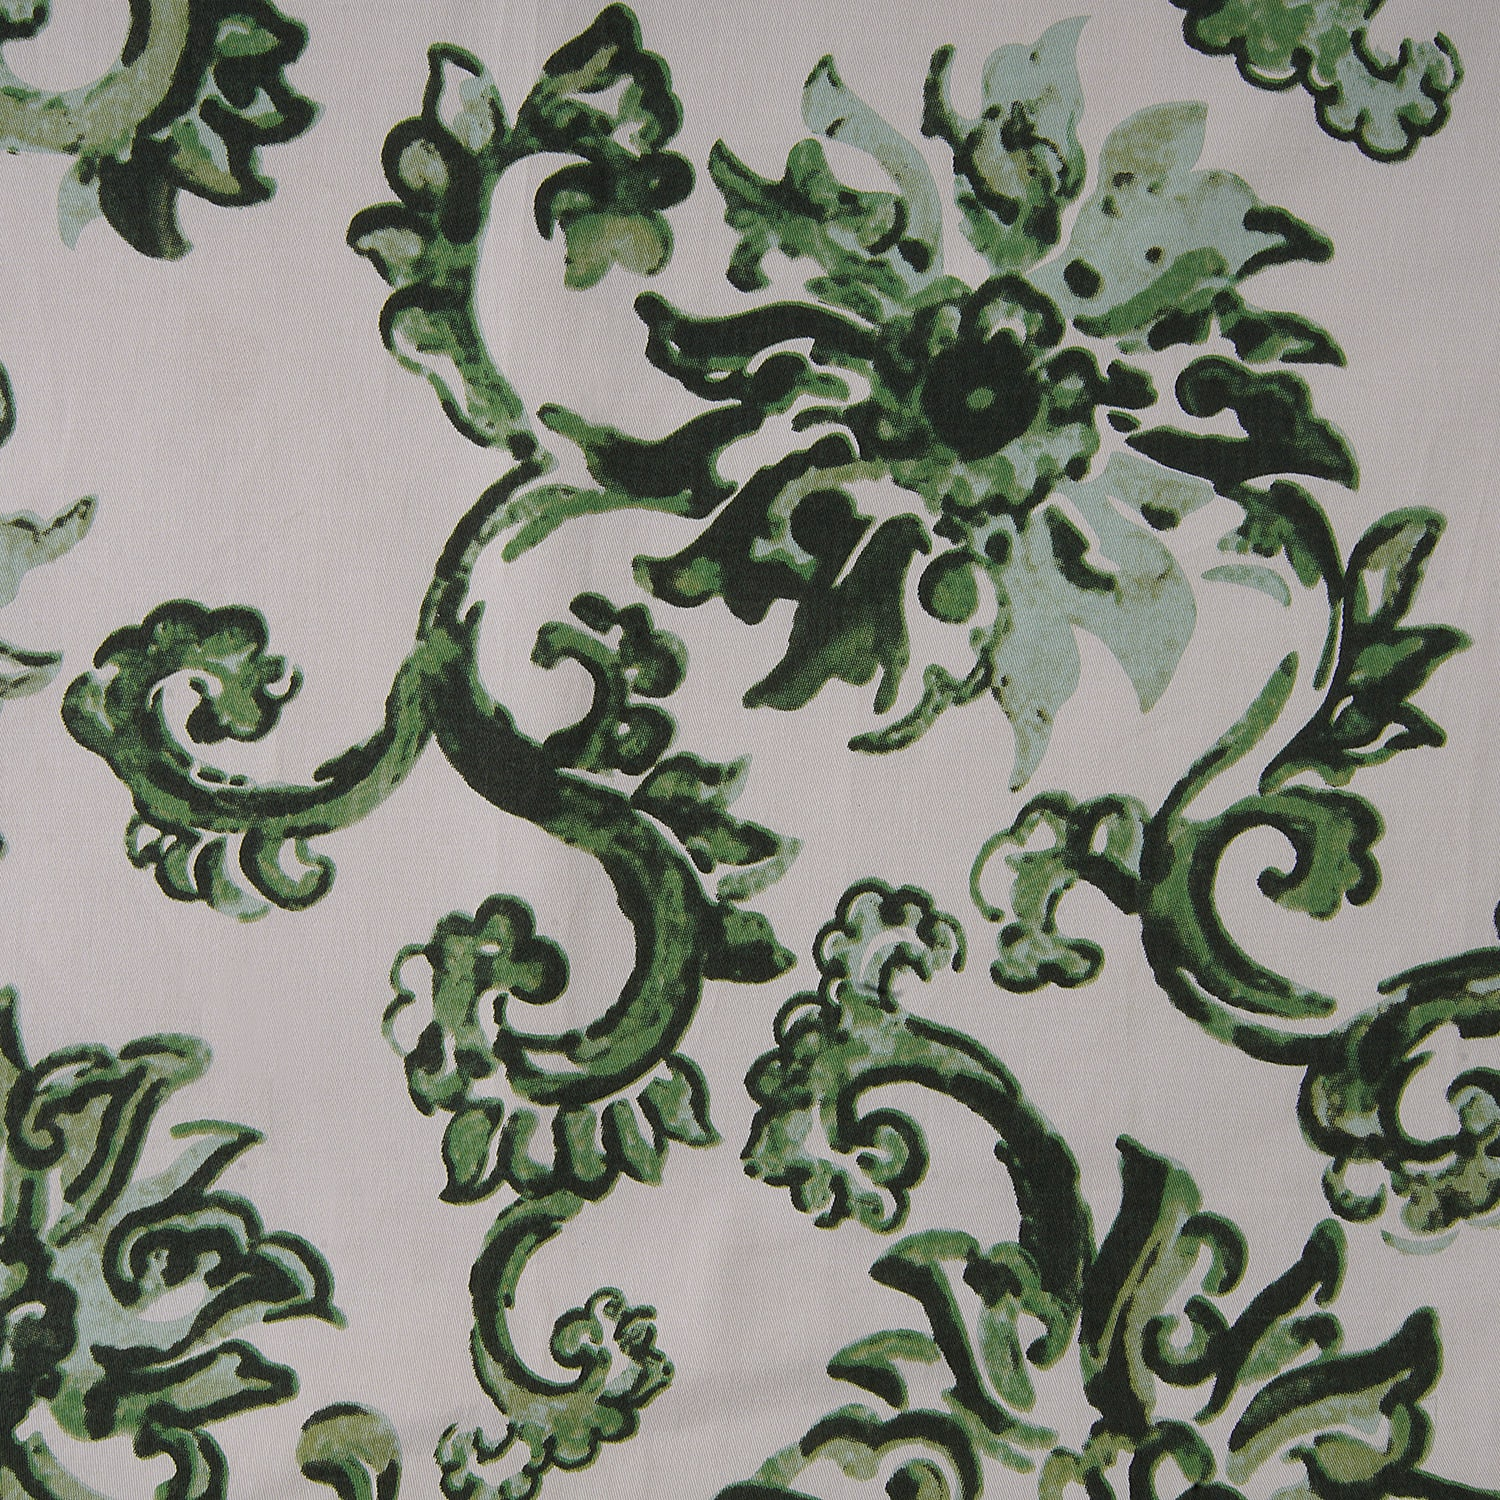 Indonesian Green Printed Cotton Twill Swatch